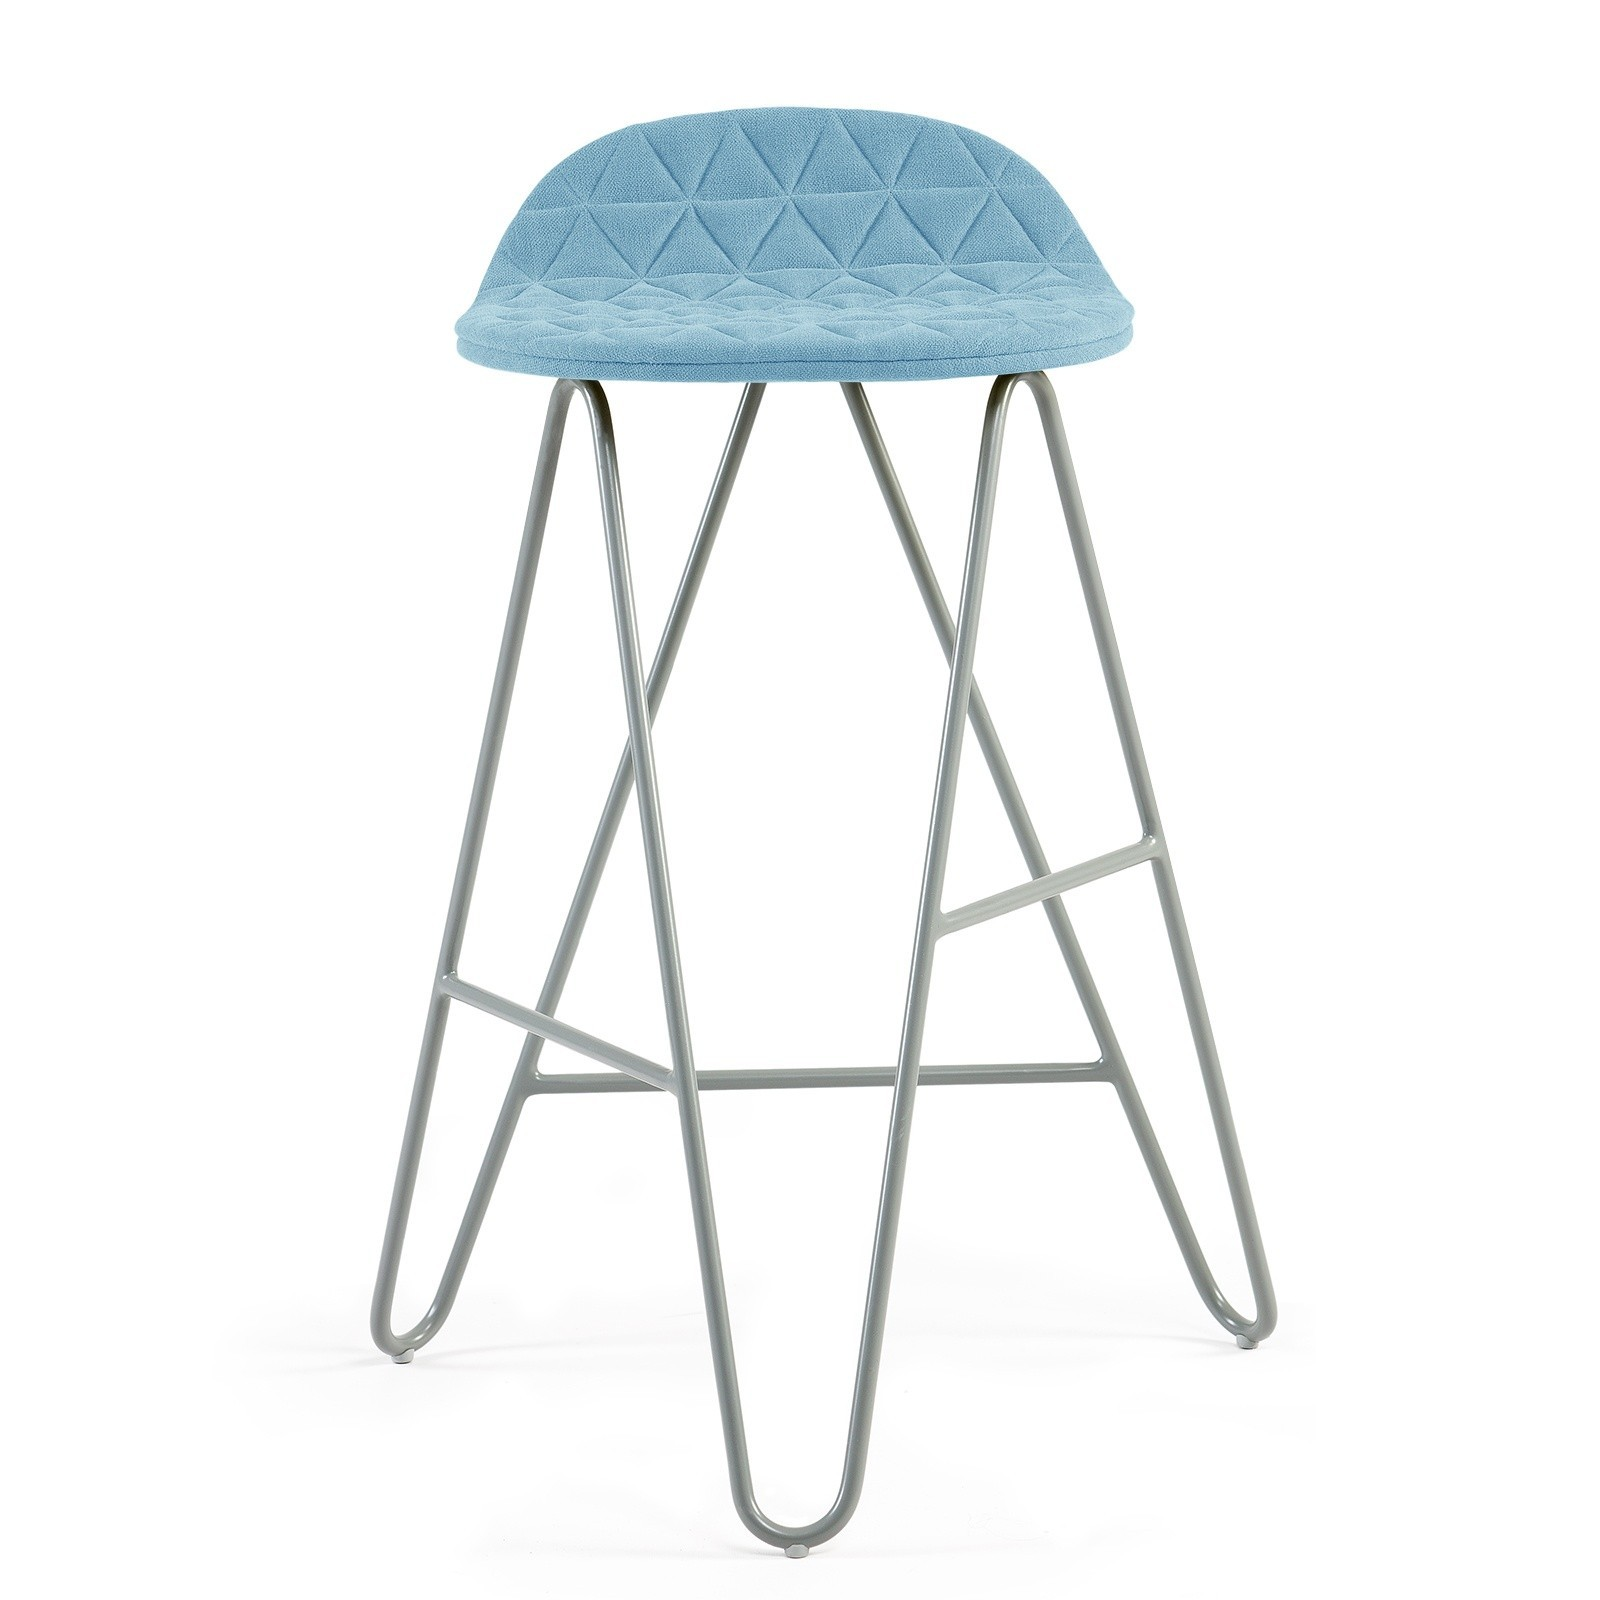 MannequinBar Low chair - 02 - light blue